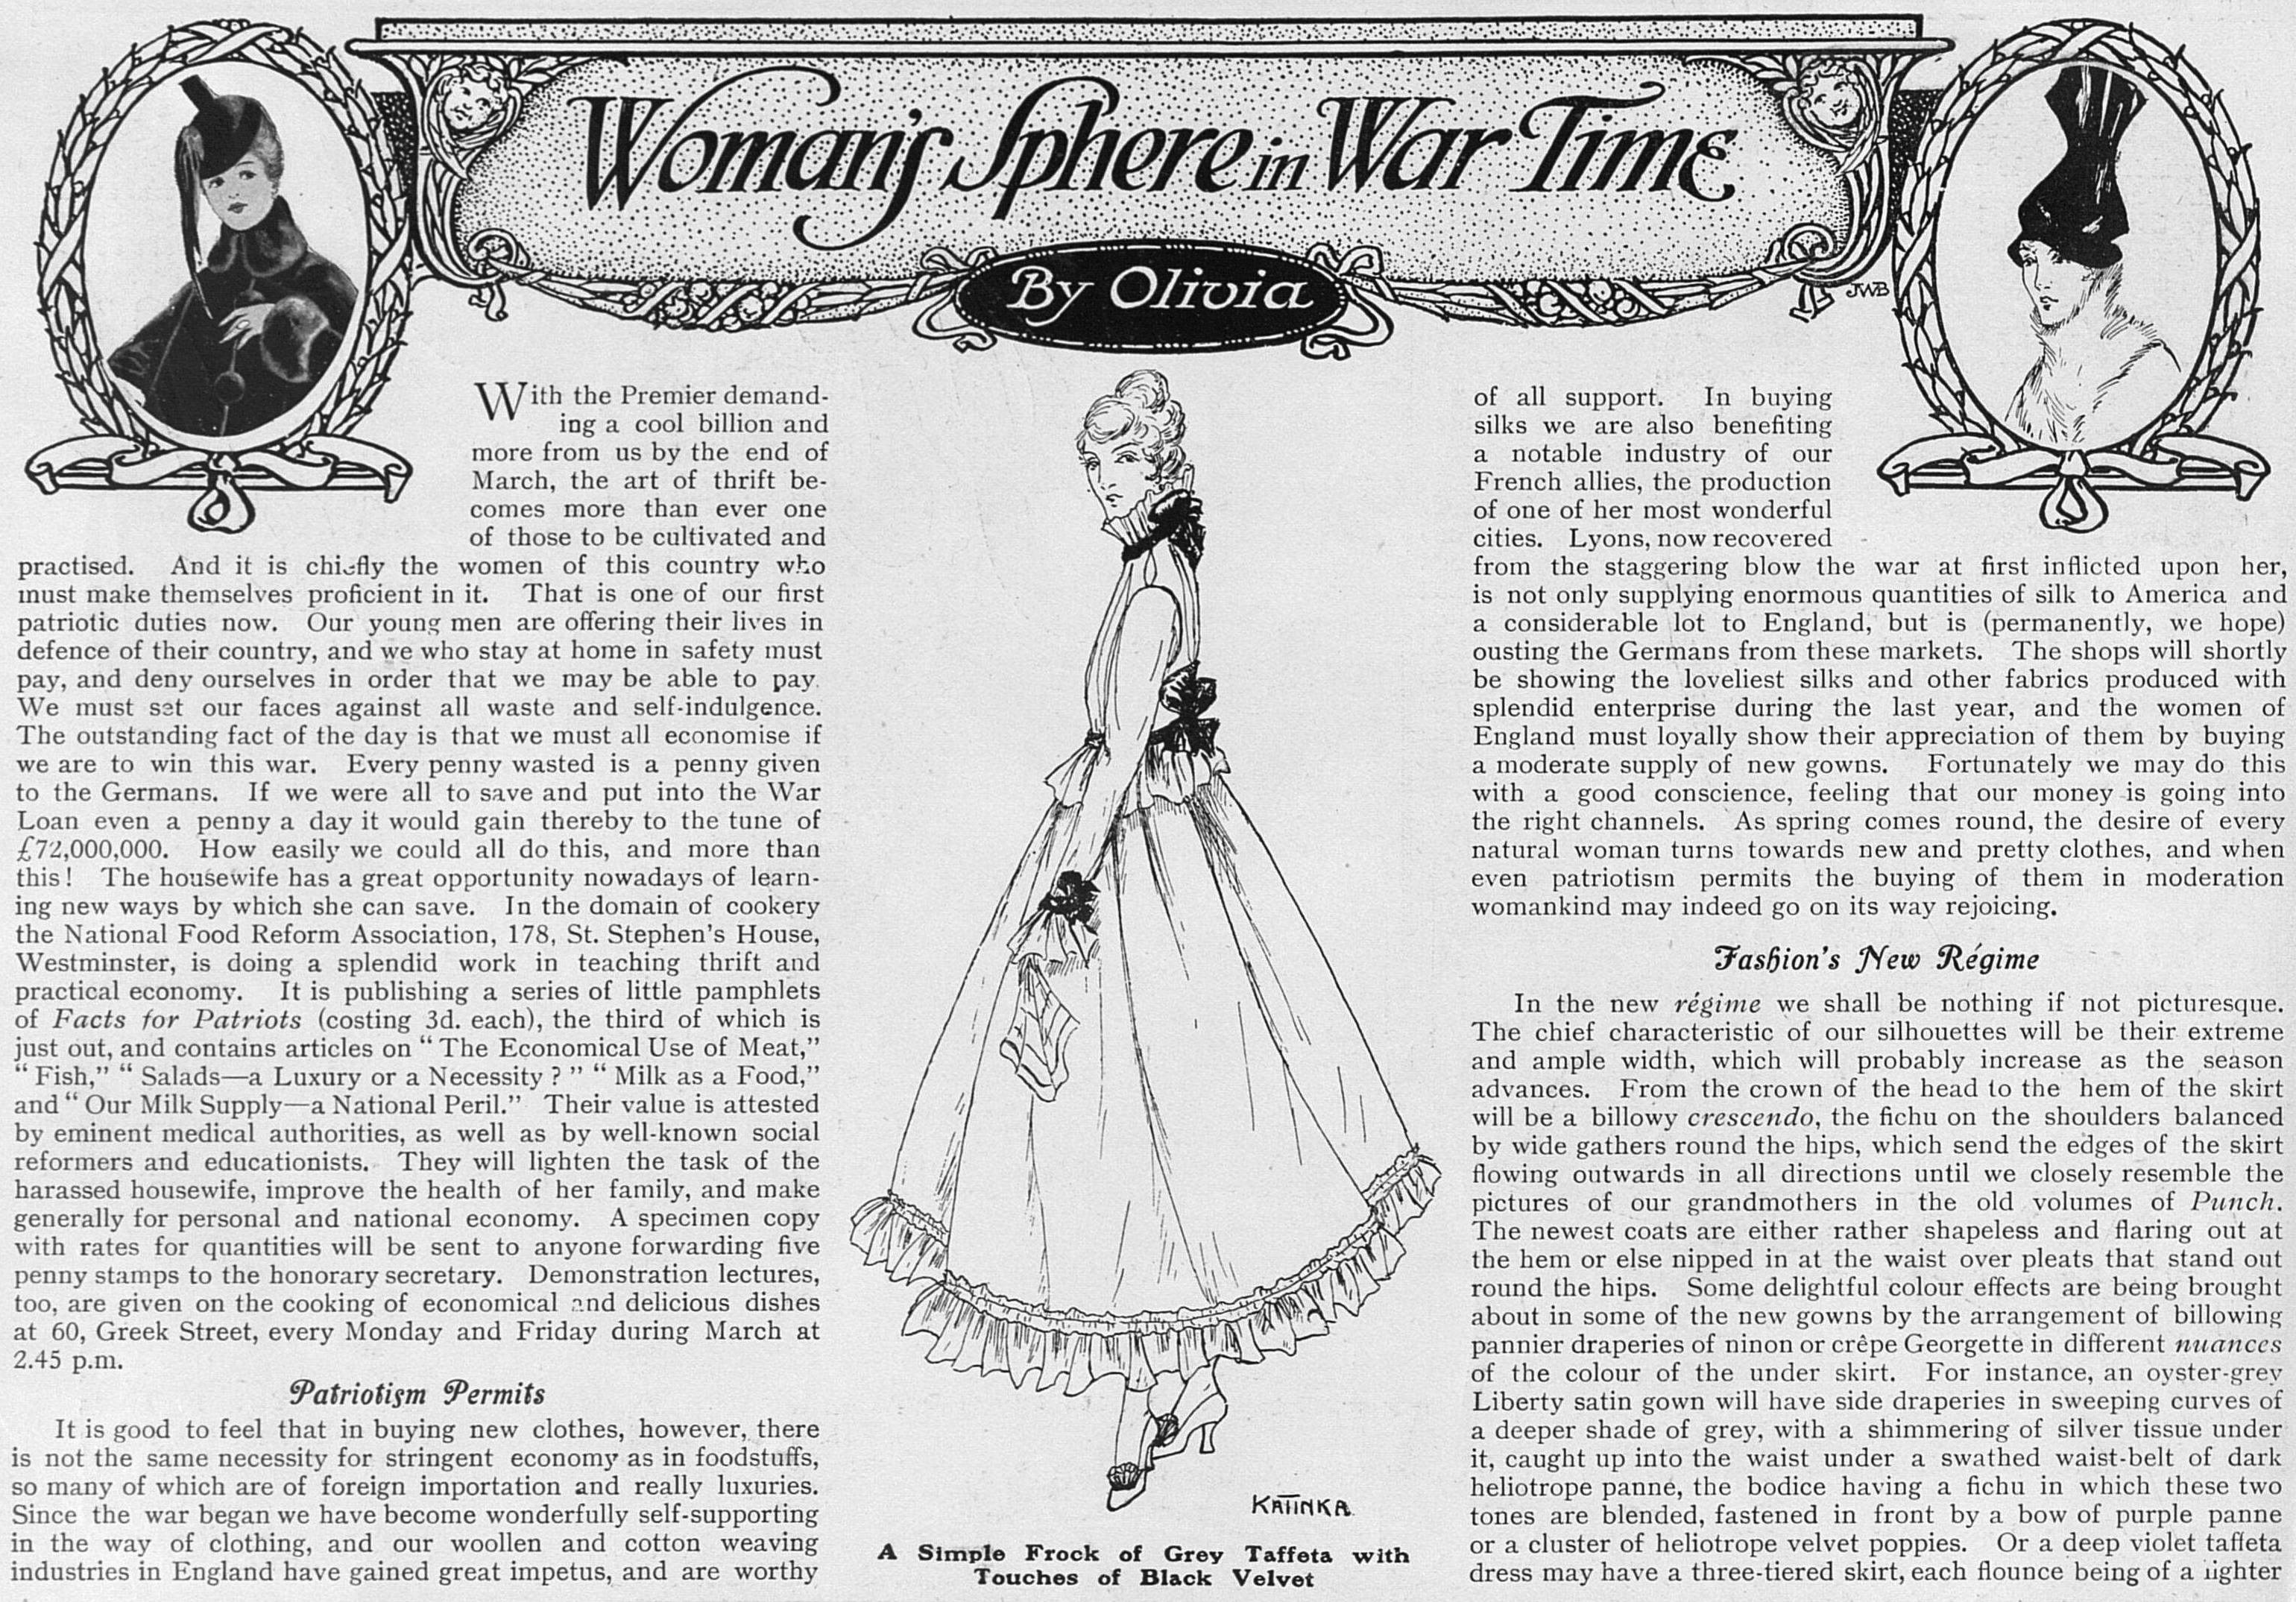 WomansSphereInWarTime_4Mar1916